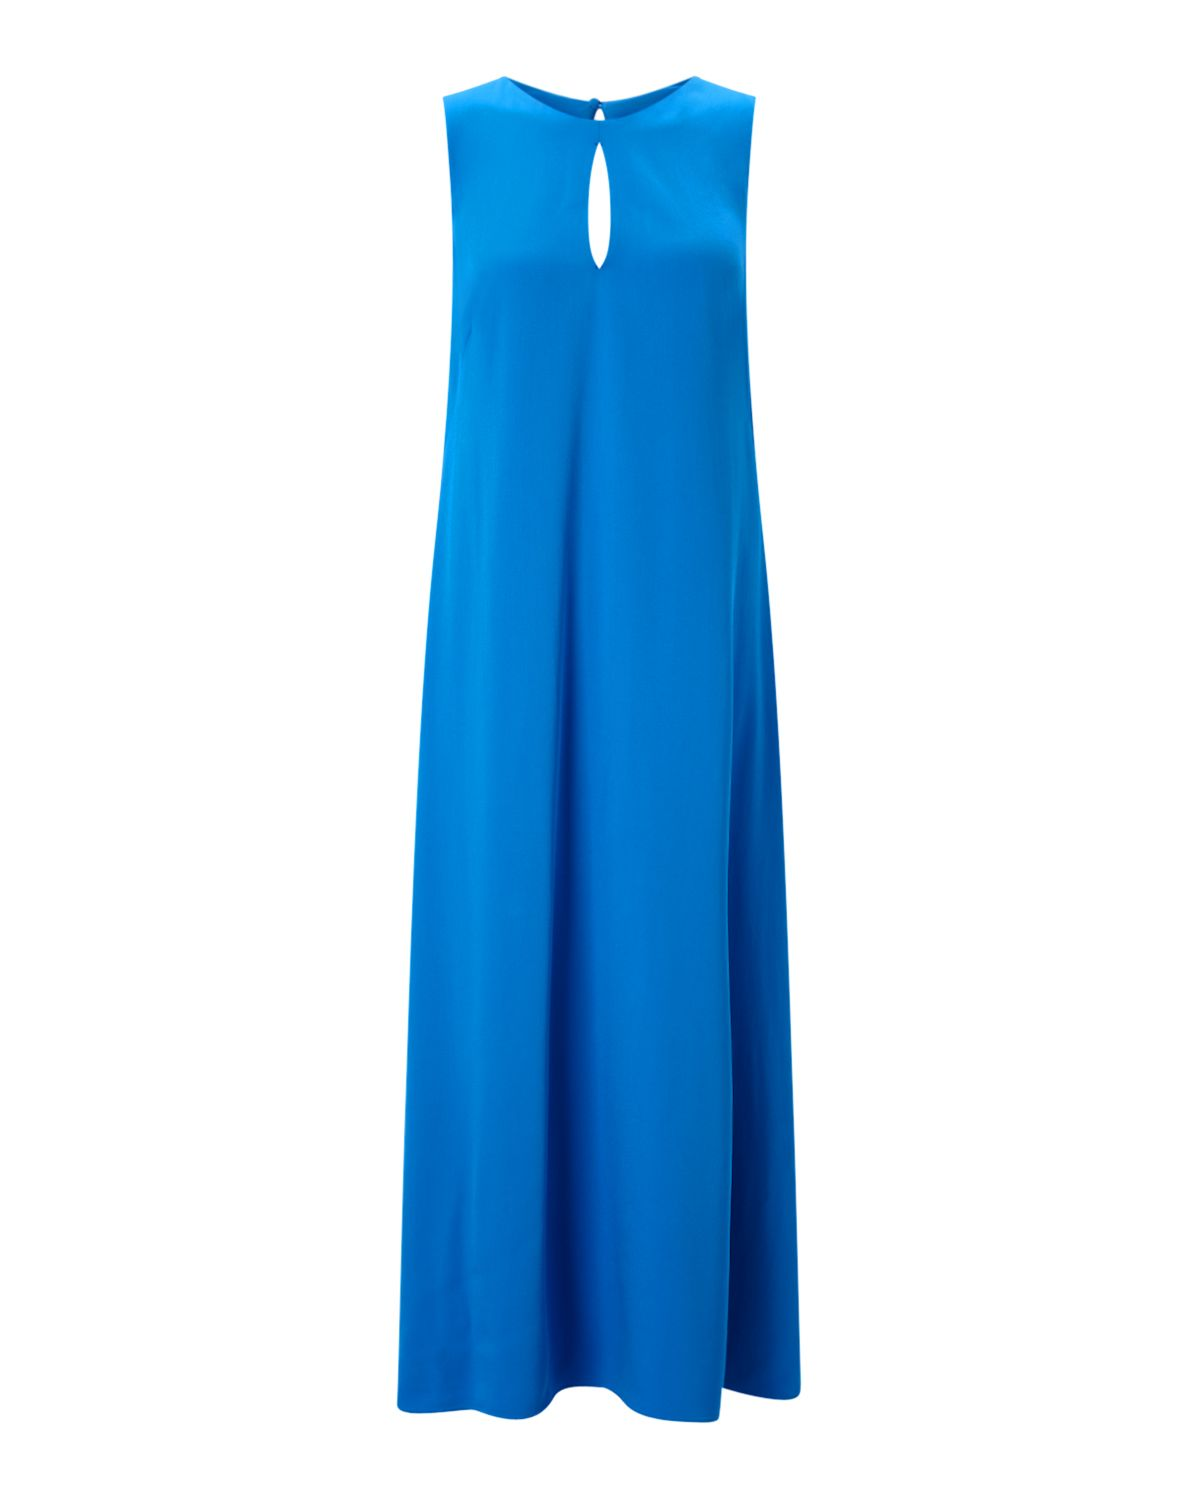 Jigsaw Maxi Dress, Blue